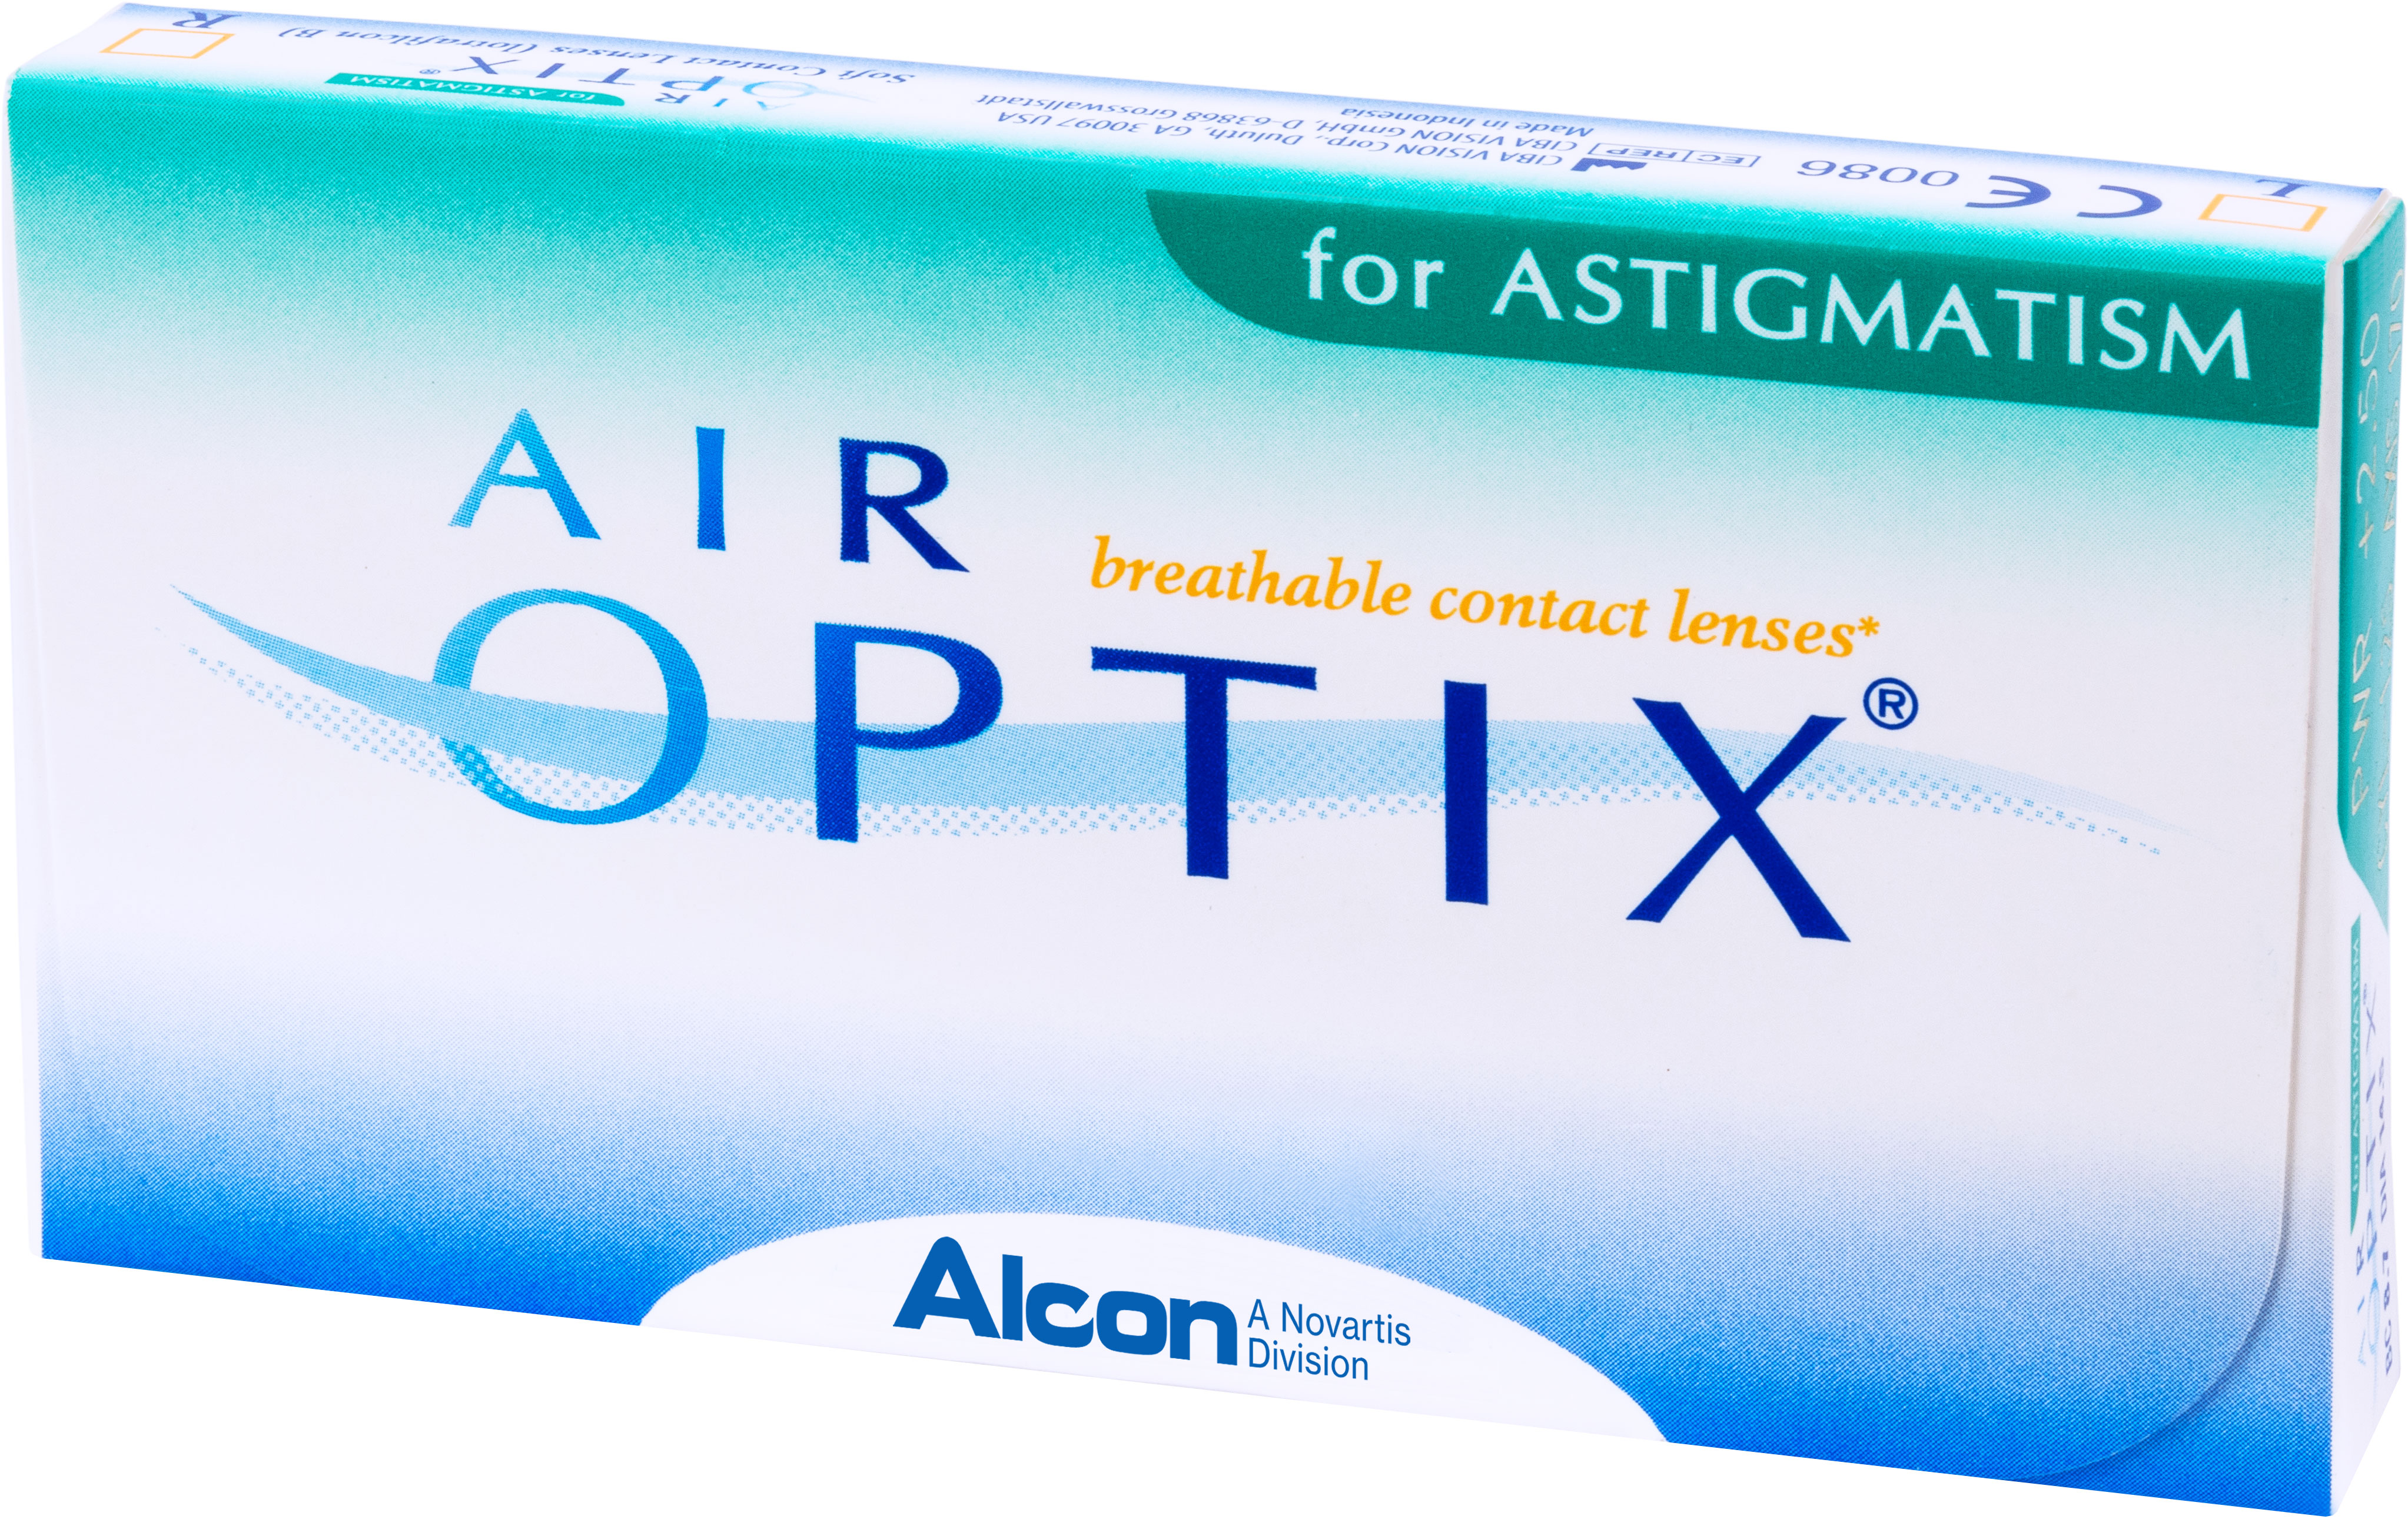 Аlcon контактные линзы Air Optix for Astigmatism 3pk /BC 8.7/DIA14.5/PWR +2.50/CYL -1.75/AXIS 160100043080with Hydraclear